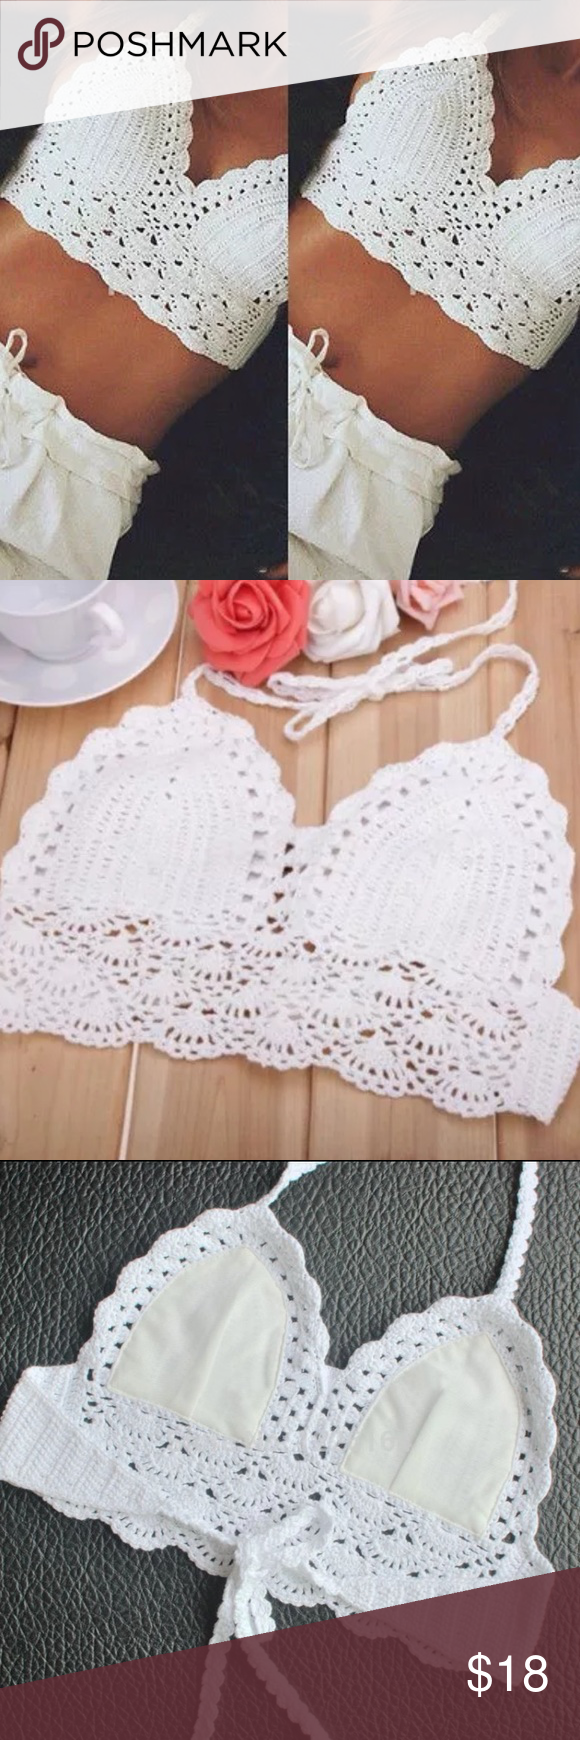 Last one! 🆕 White Boho Crochet Crop Top/Bralette | Tejido, Baño y ...